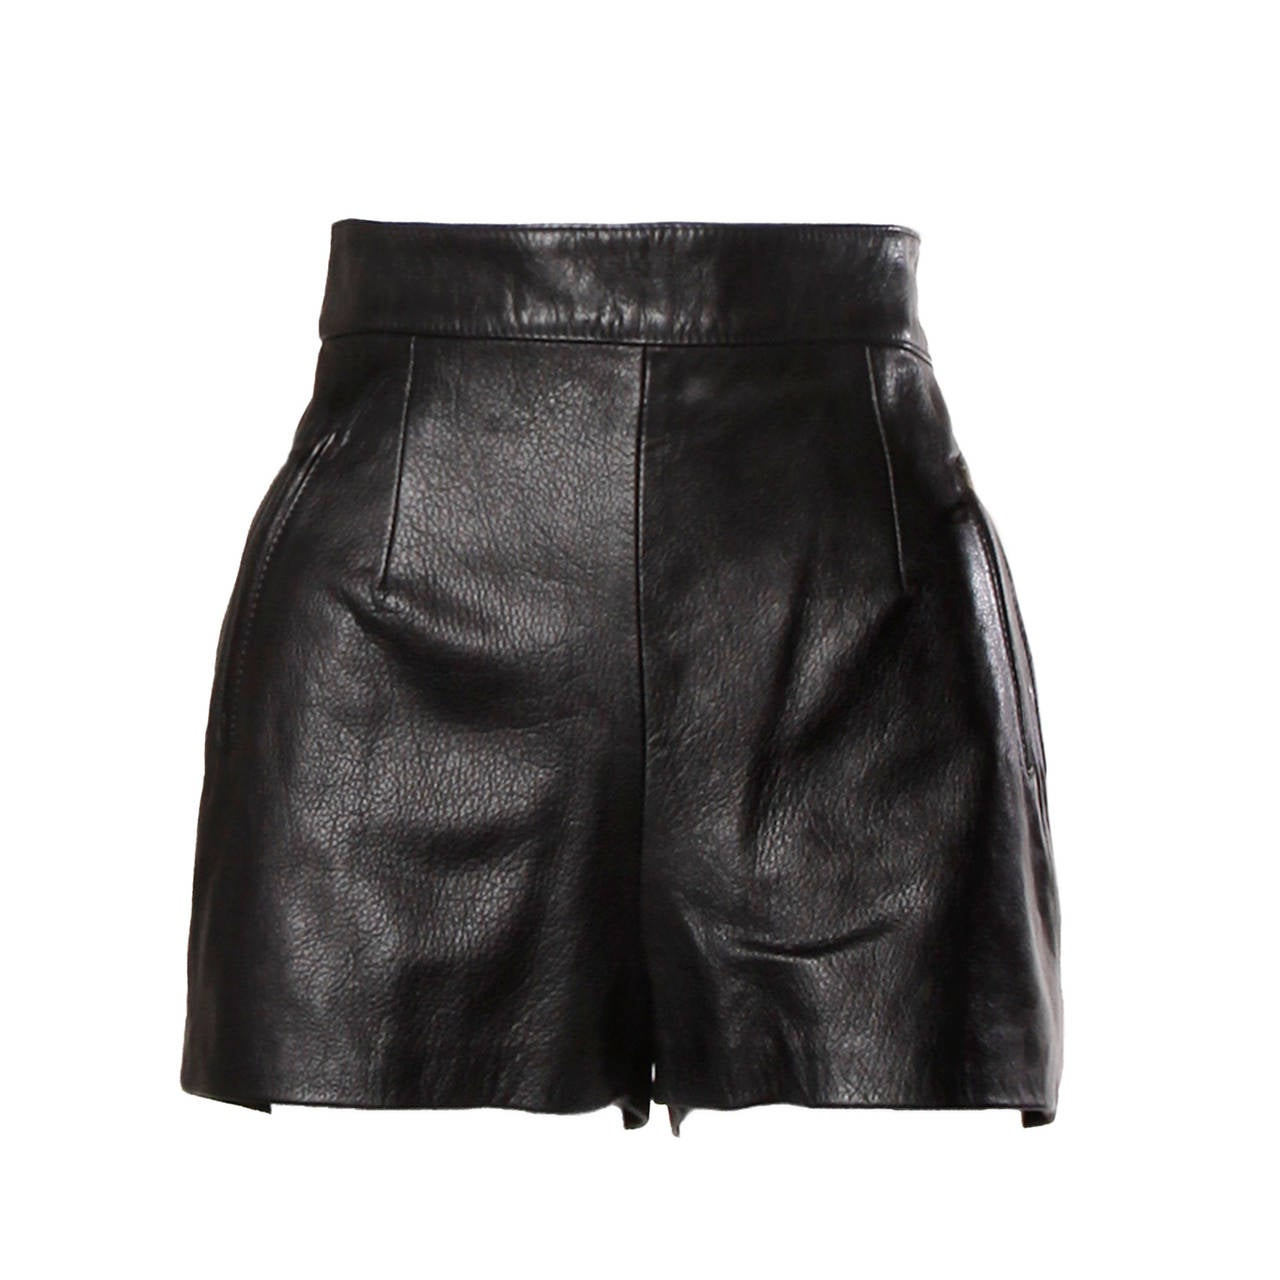 gusajigadexe.cf offers Leather Shorts at cheap prices, so you can shop from a huge selection of Leather Shorts, FREE Shipping available worldwide.